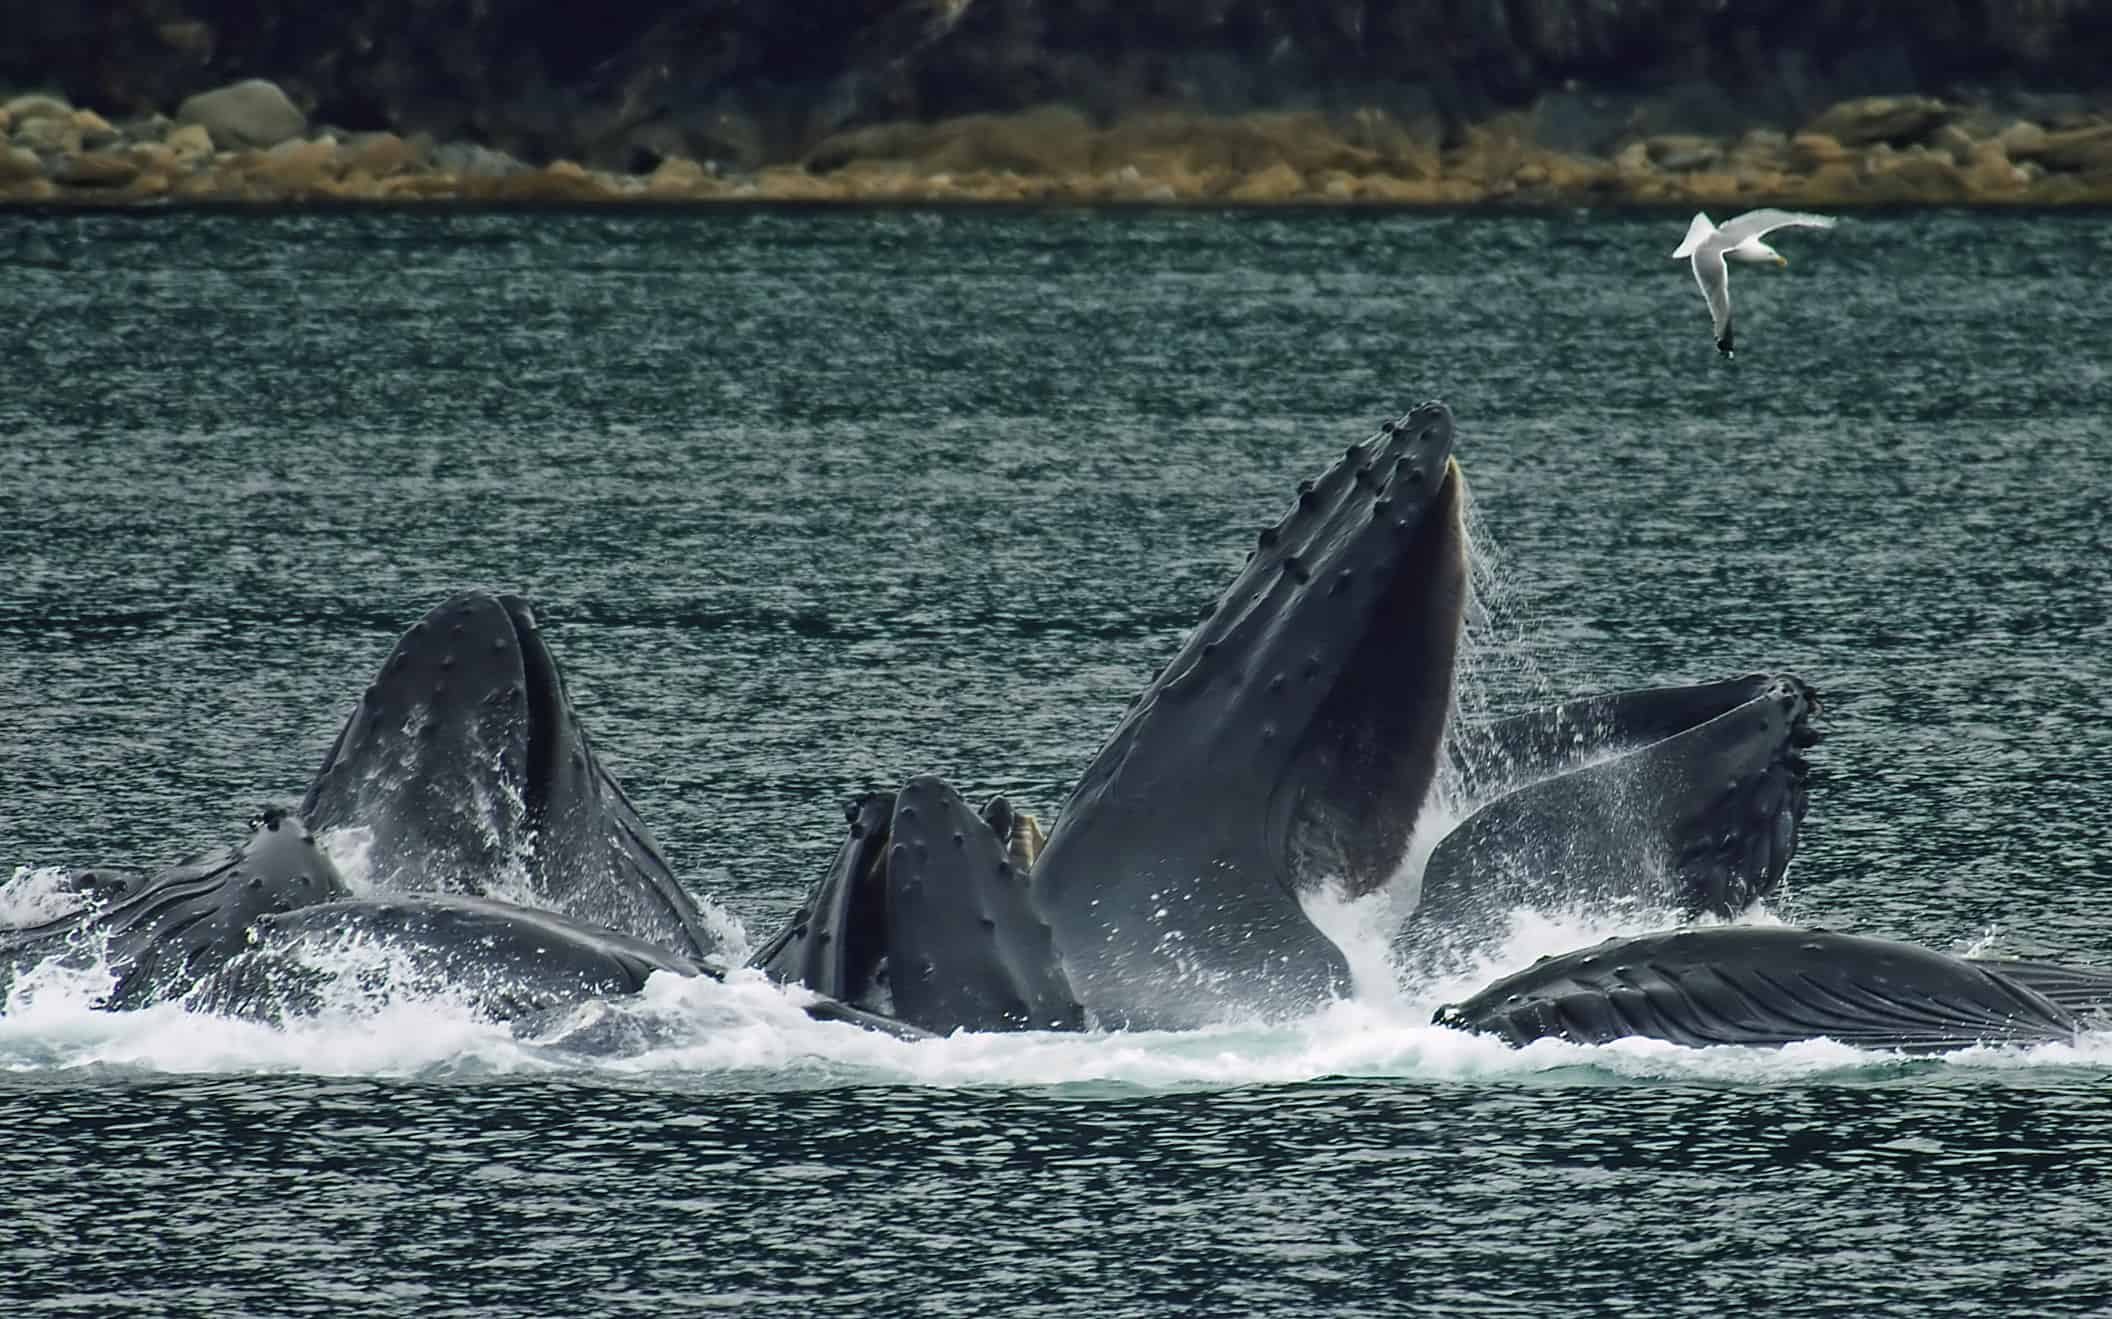 Does Humpback Whale migrate?